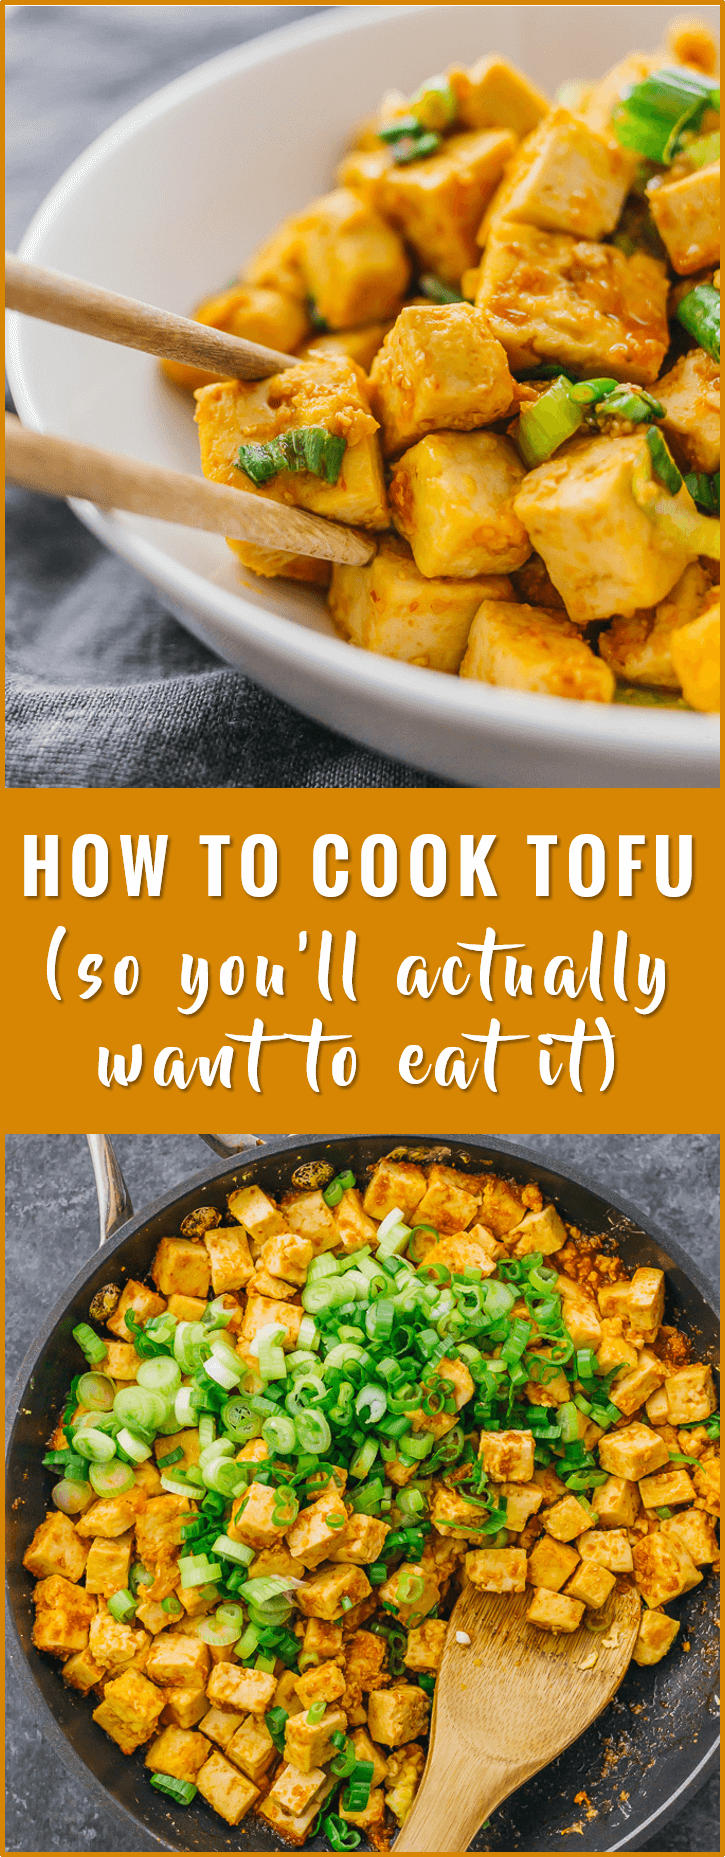 Learn how to cook tofu in a pan with a delicious sauce using this very simple recipe. vegetarian, baked, healthy, scramble, crispy, fried, stir fry, marinade, tacos, nuggets, bbq, spicy, in oven